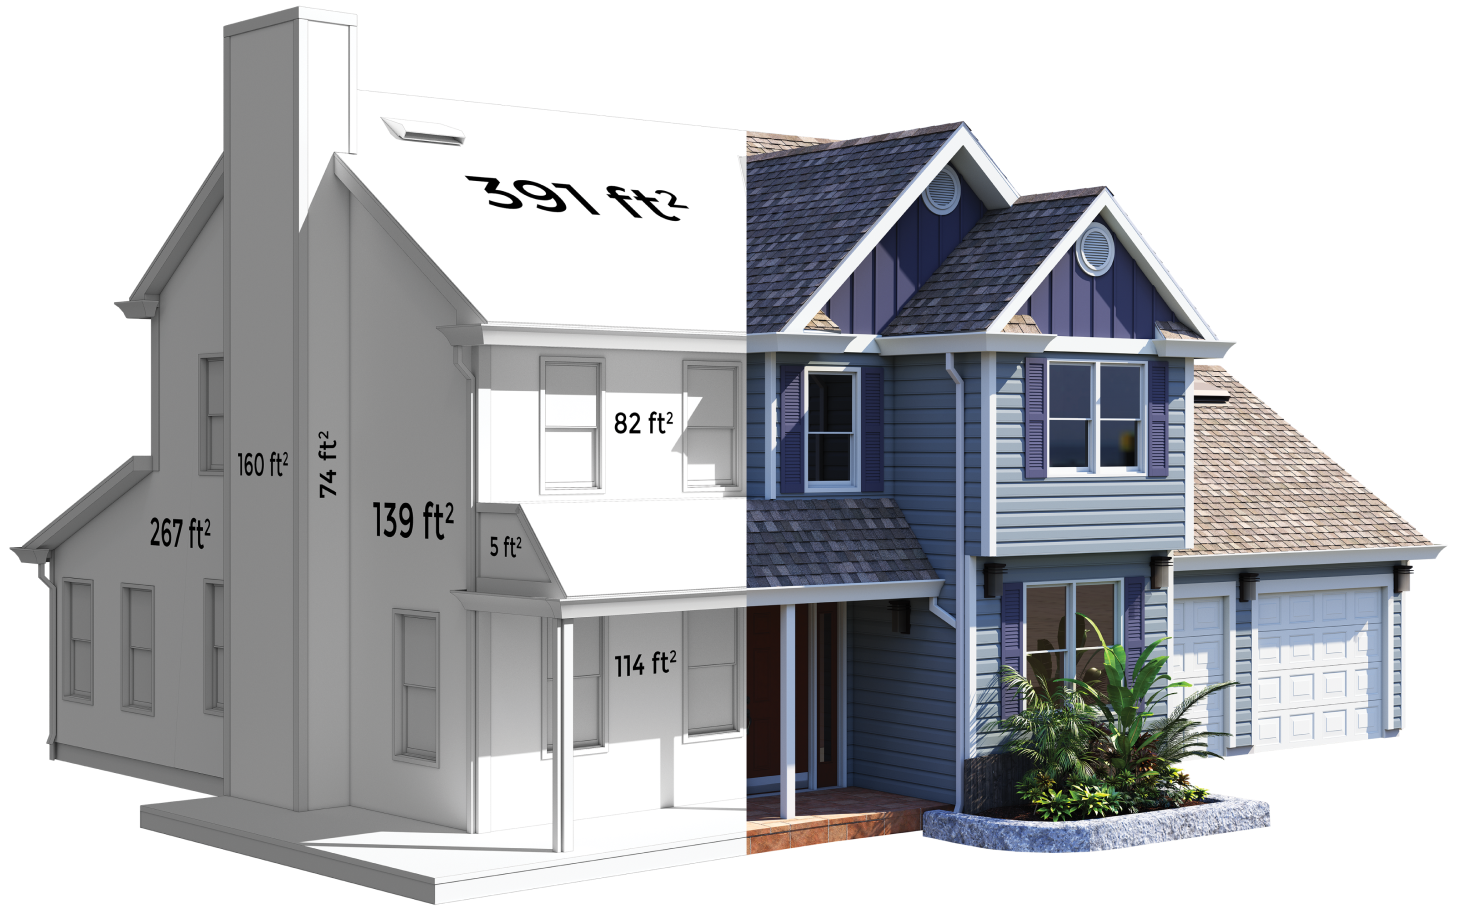 A rendered image of a house with a cutaway showing various dimensions of surfaces